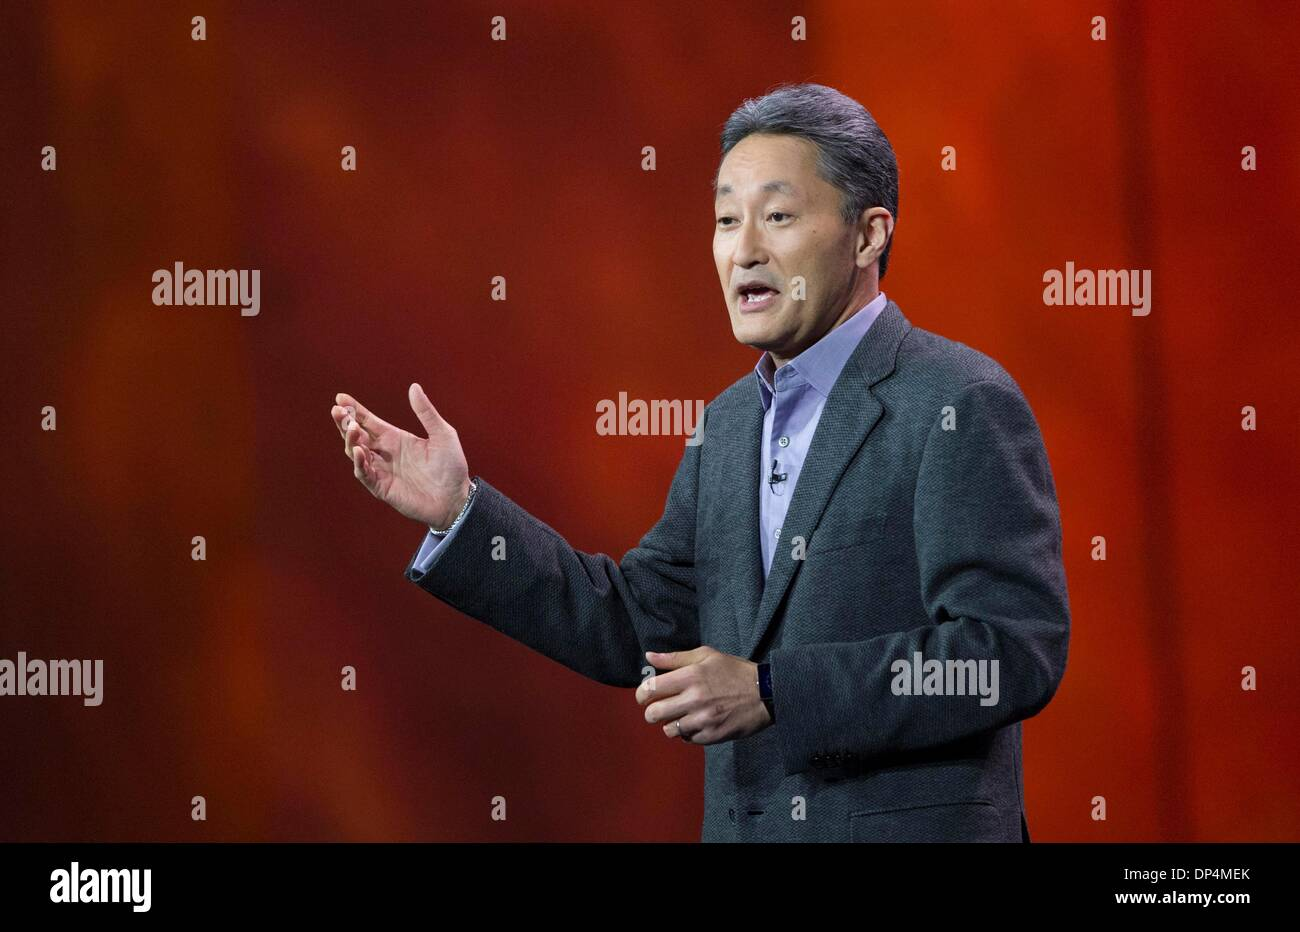 Sony Ceo Stock Photos & Sony Ceo Stock Images - Alamy